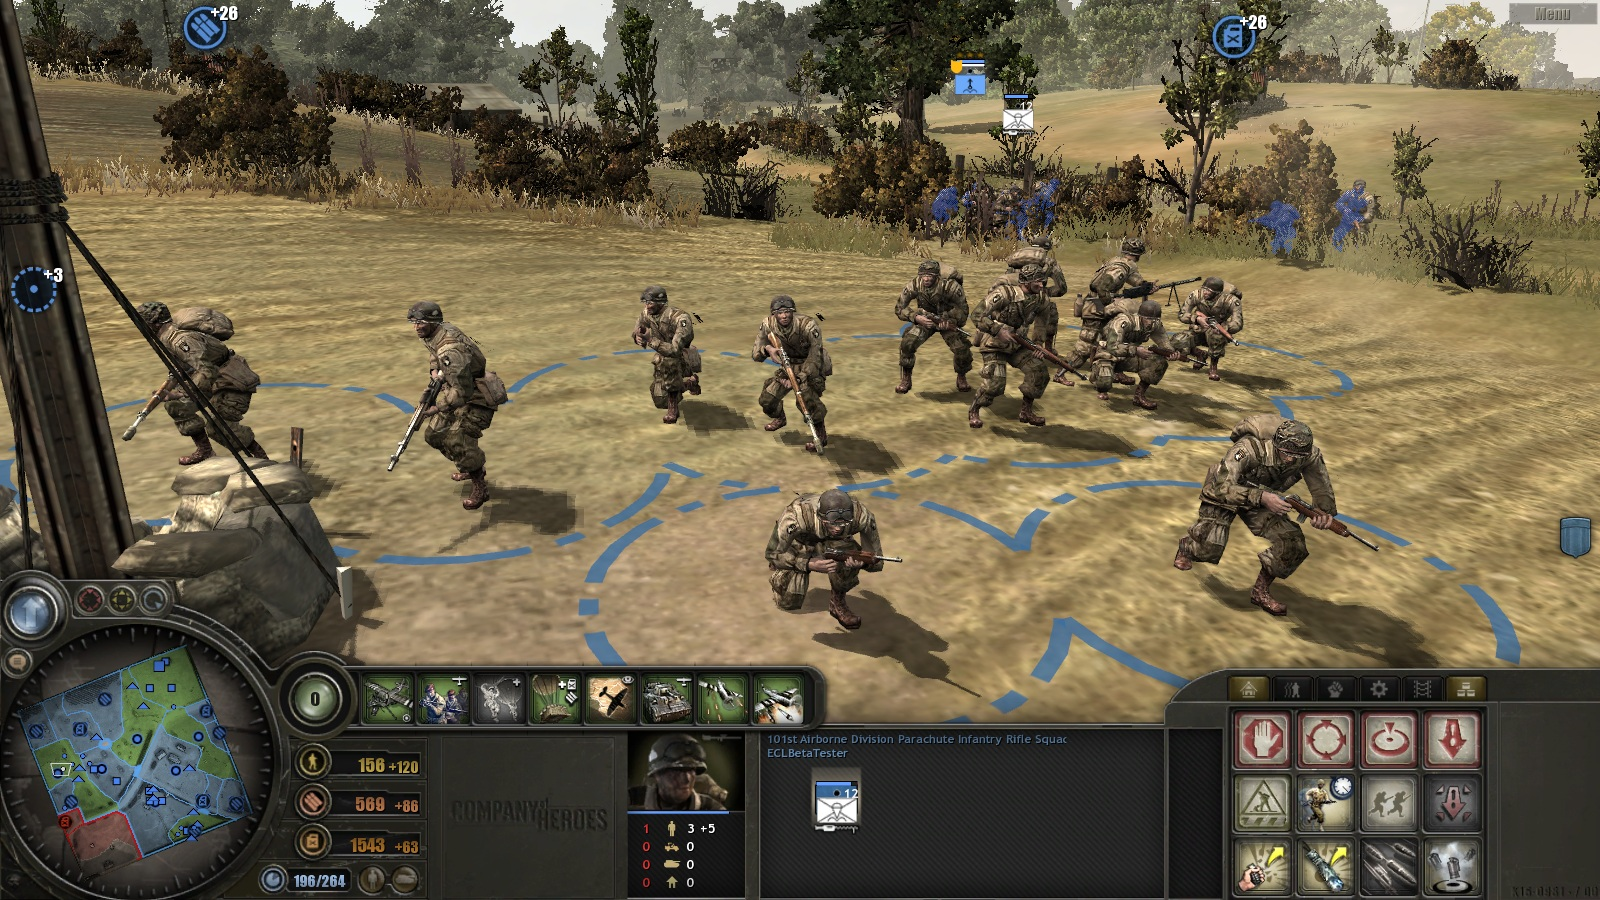 Us 101st Airborne Div Image Enhanced Combat Leader Beyond Overlord Mod For Company Of Heroes Mod Db